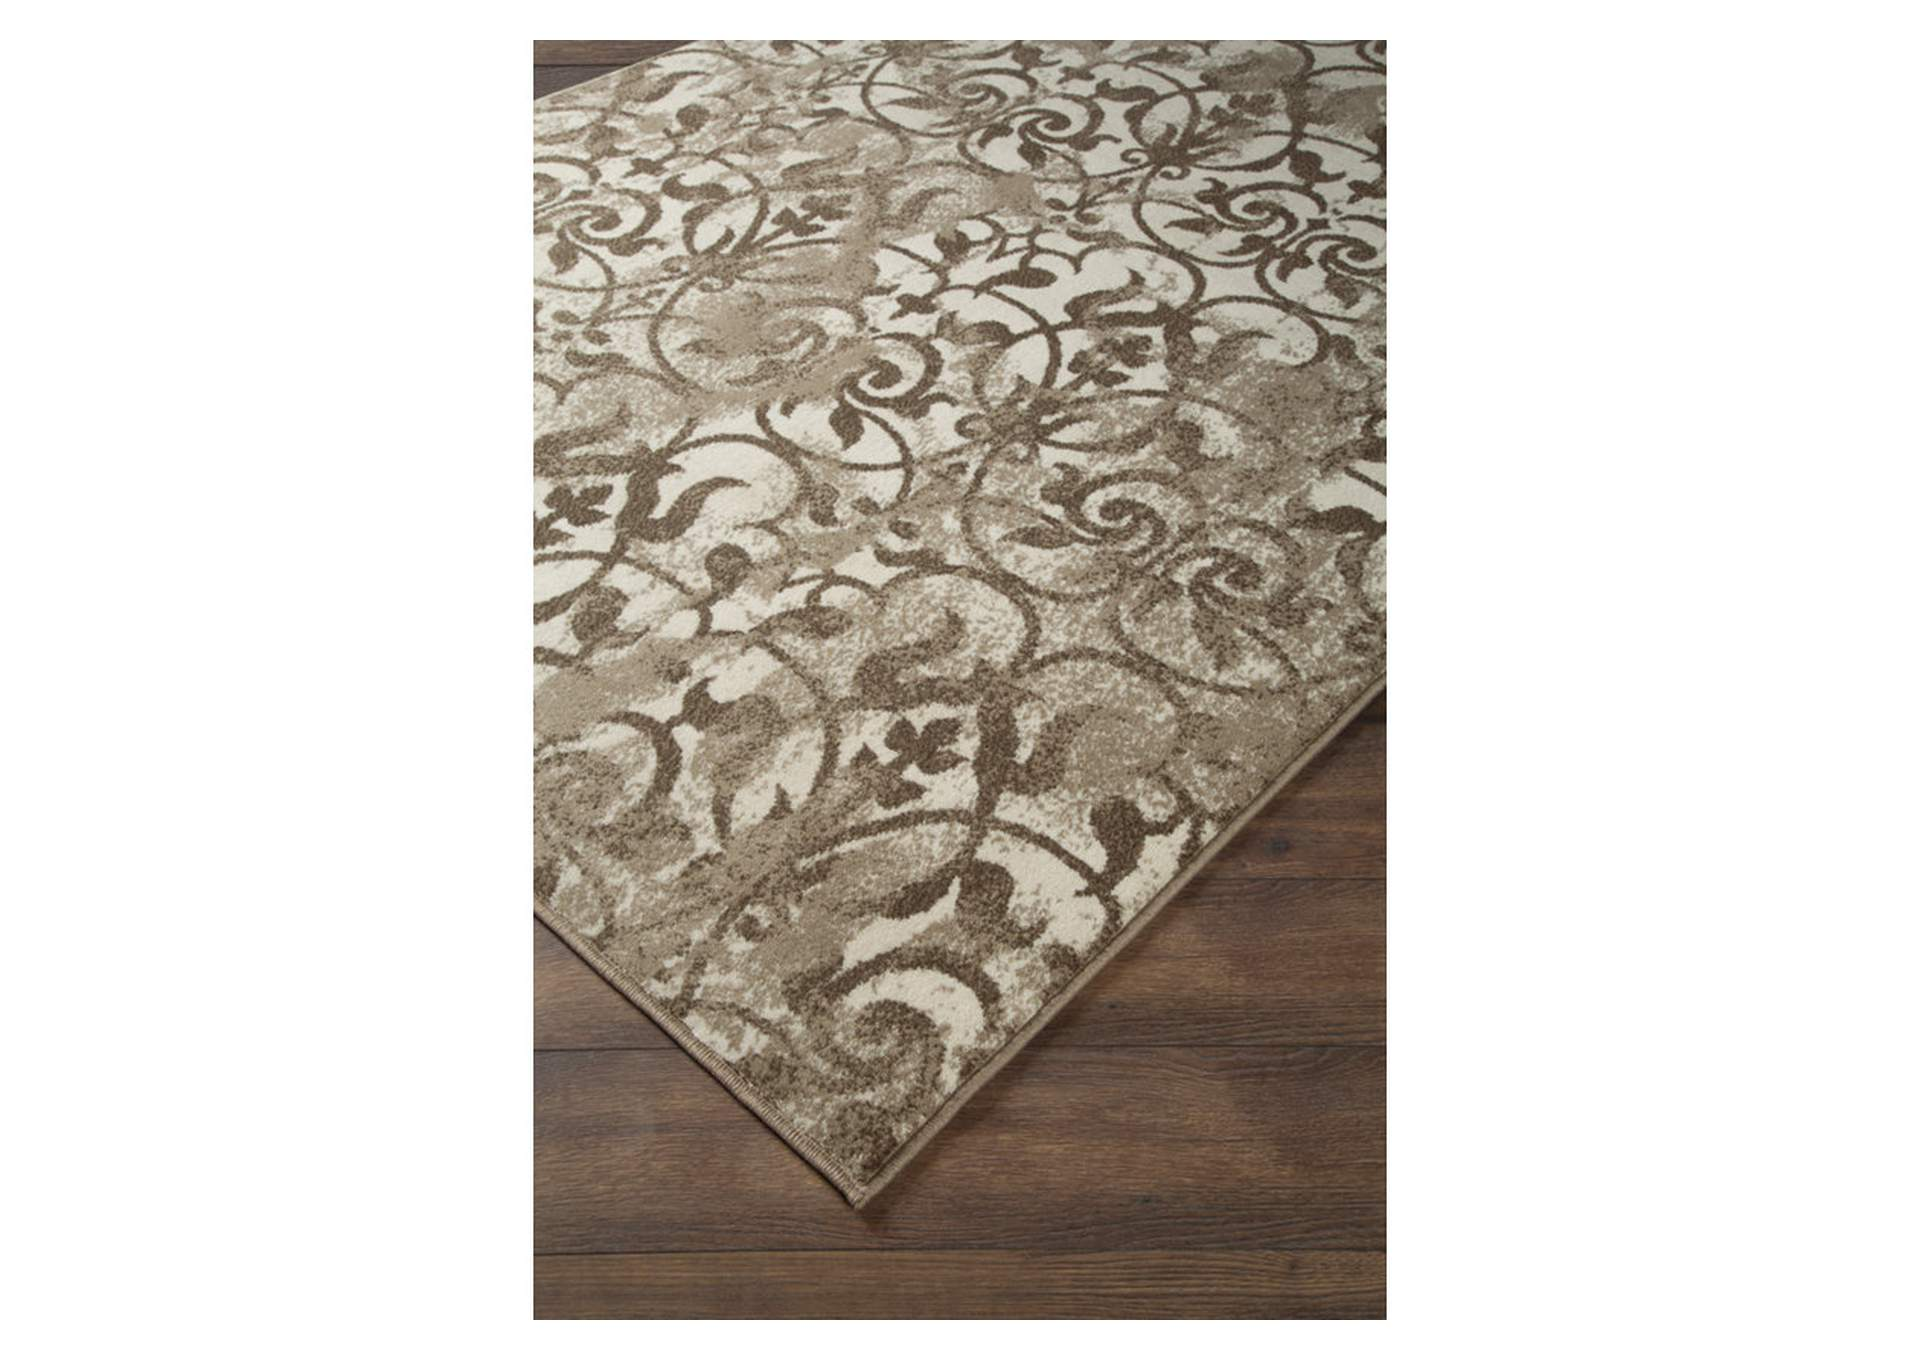 Cadrian White 8' x 10' Rug,Signature Design By Ashley